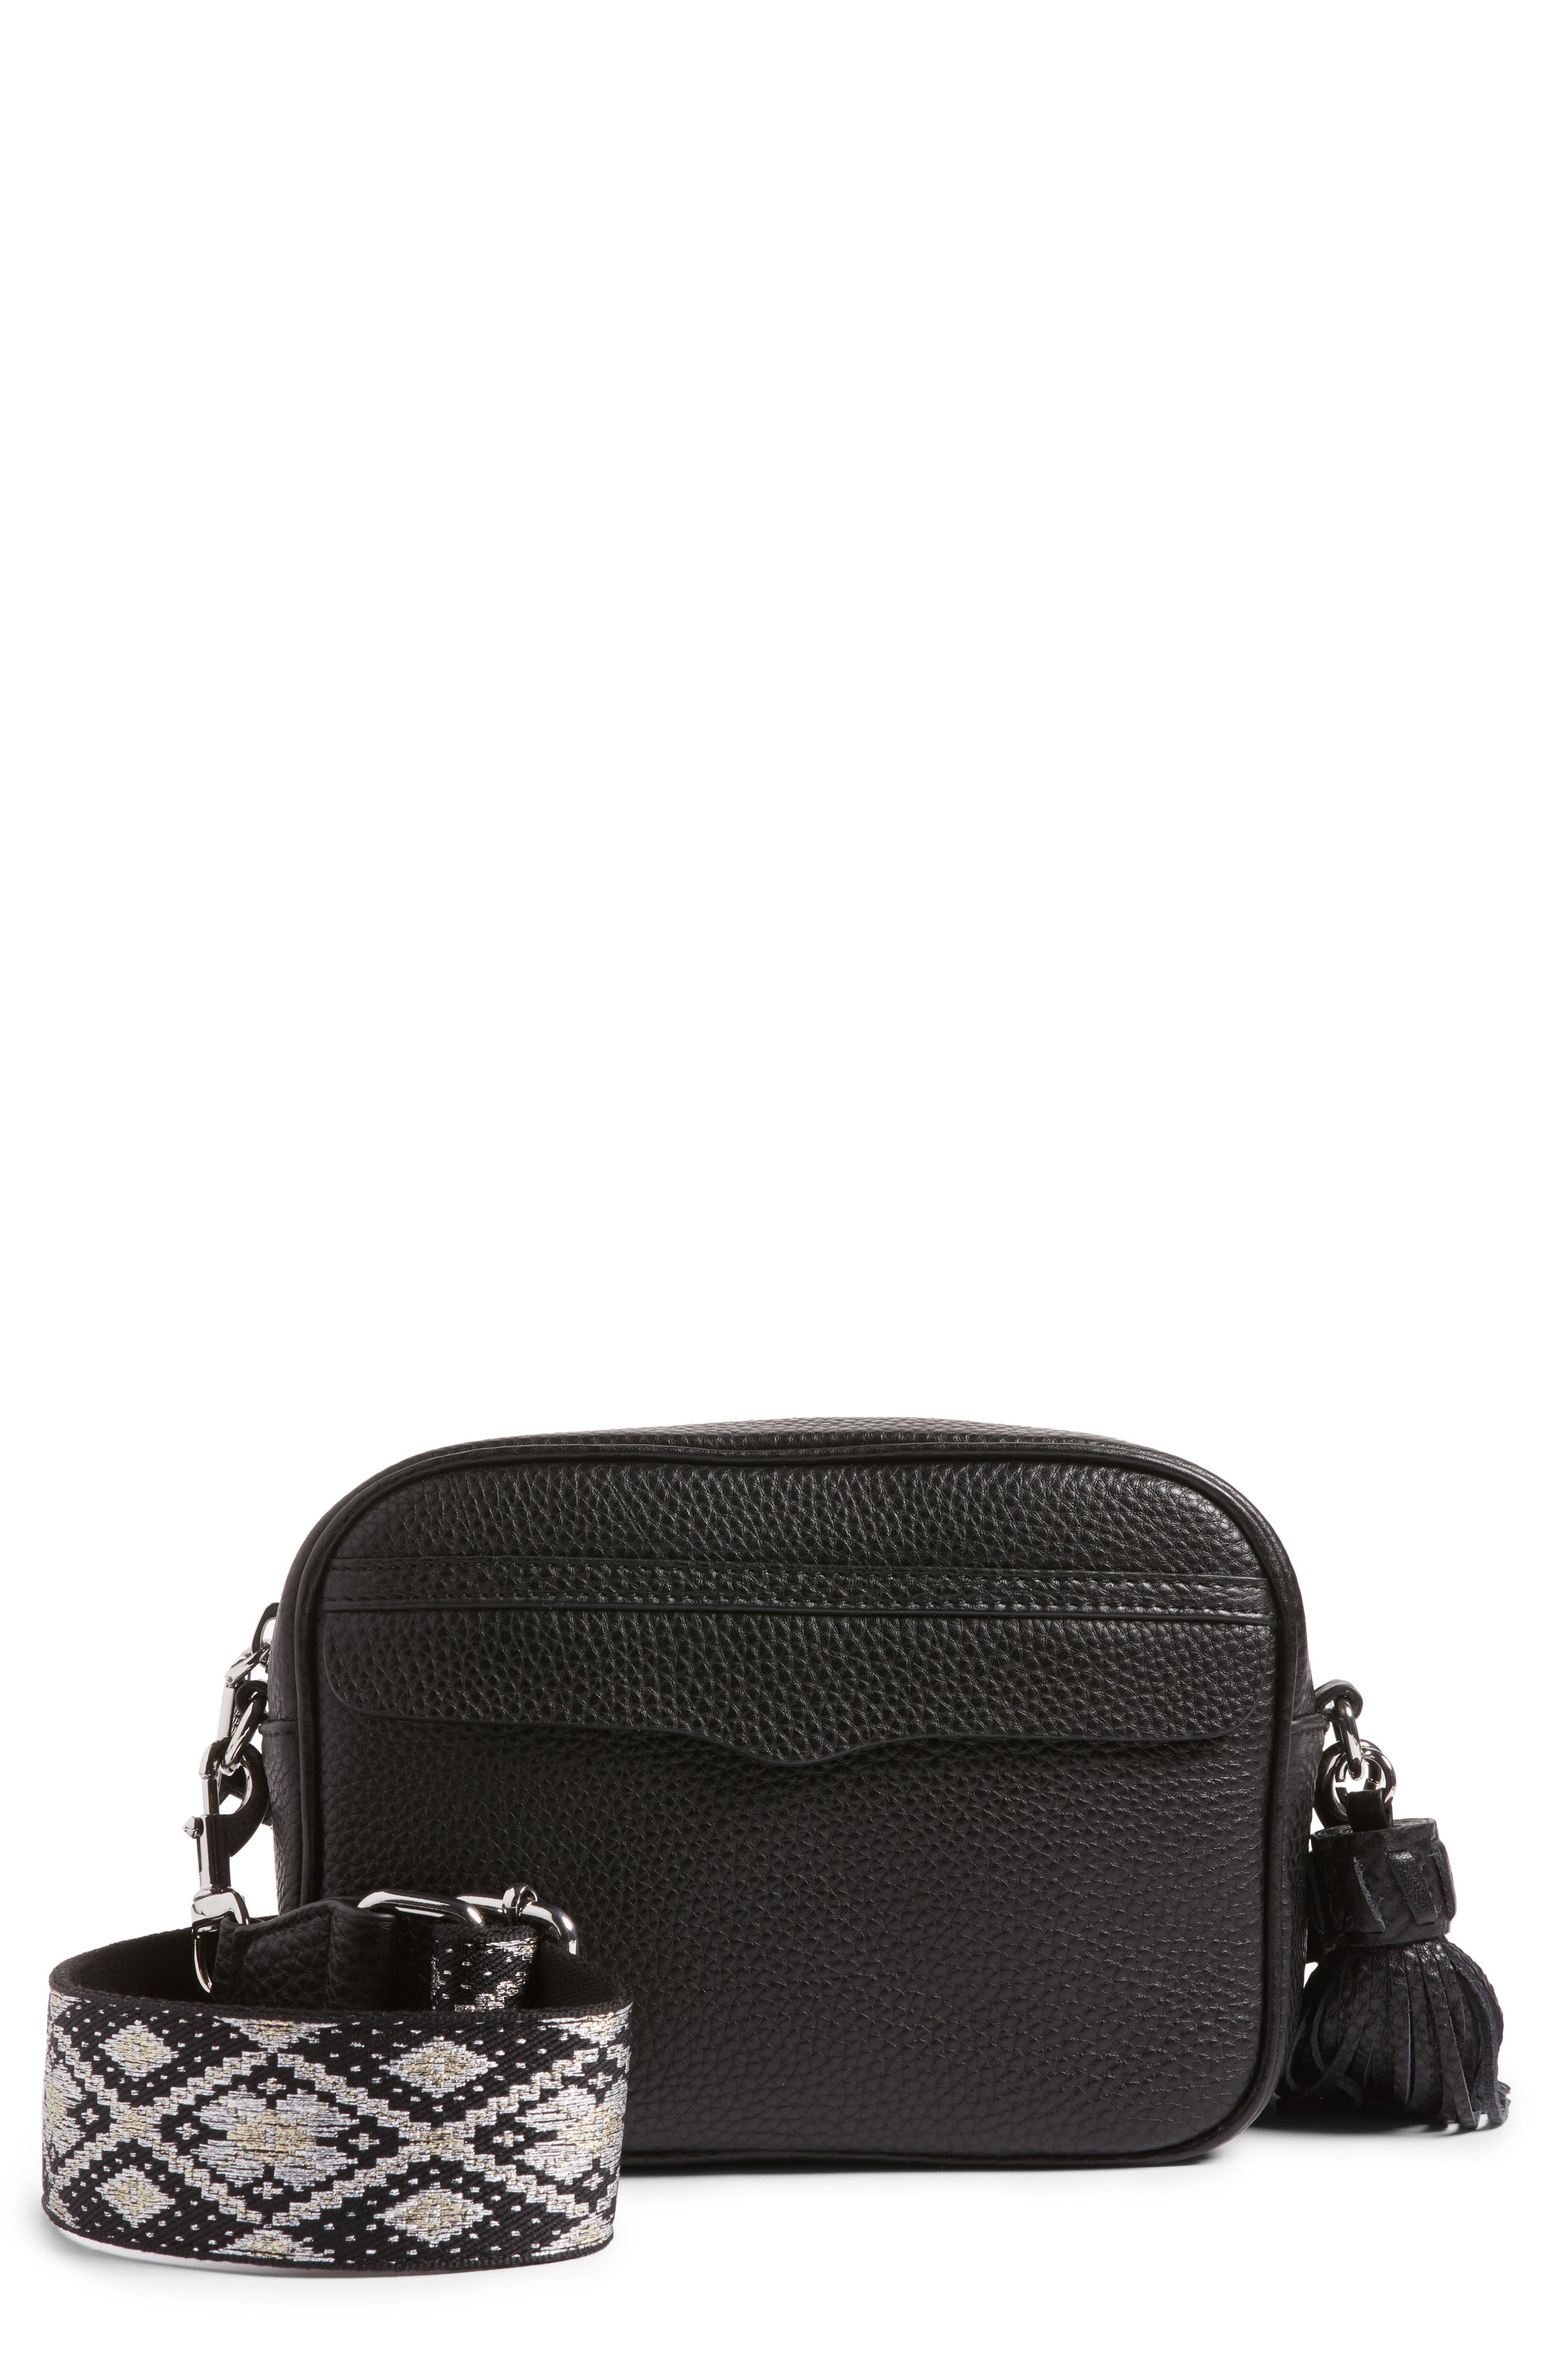 Leather Camera Bag with Guitar Strap,                             Main thumbnail 1, color,                             Black/ Silver Hardware